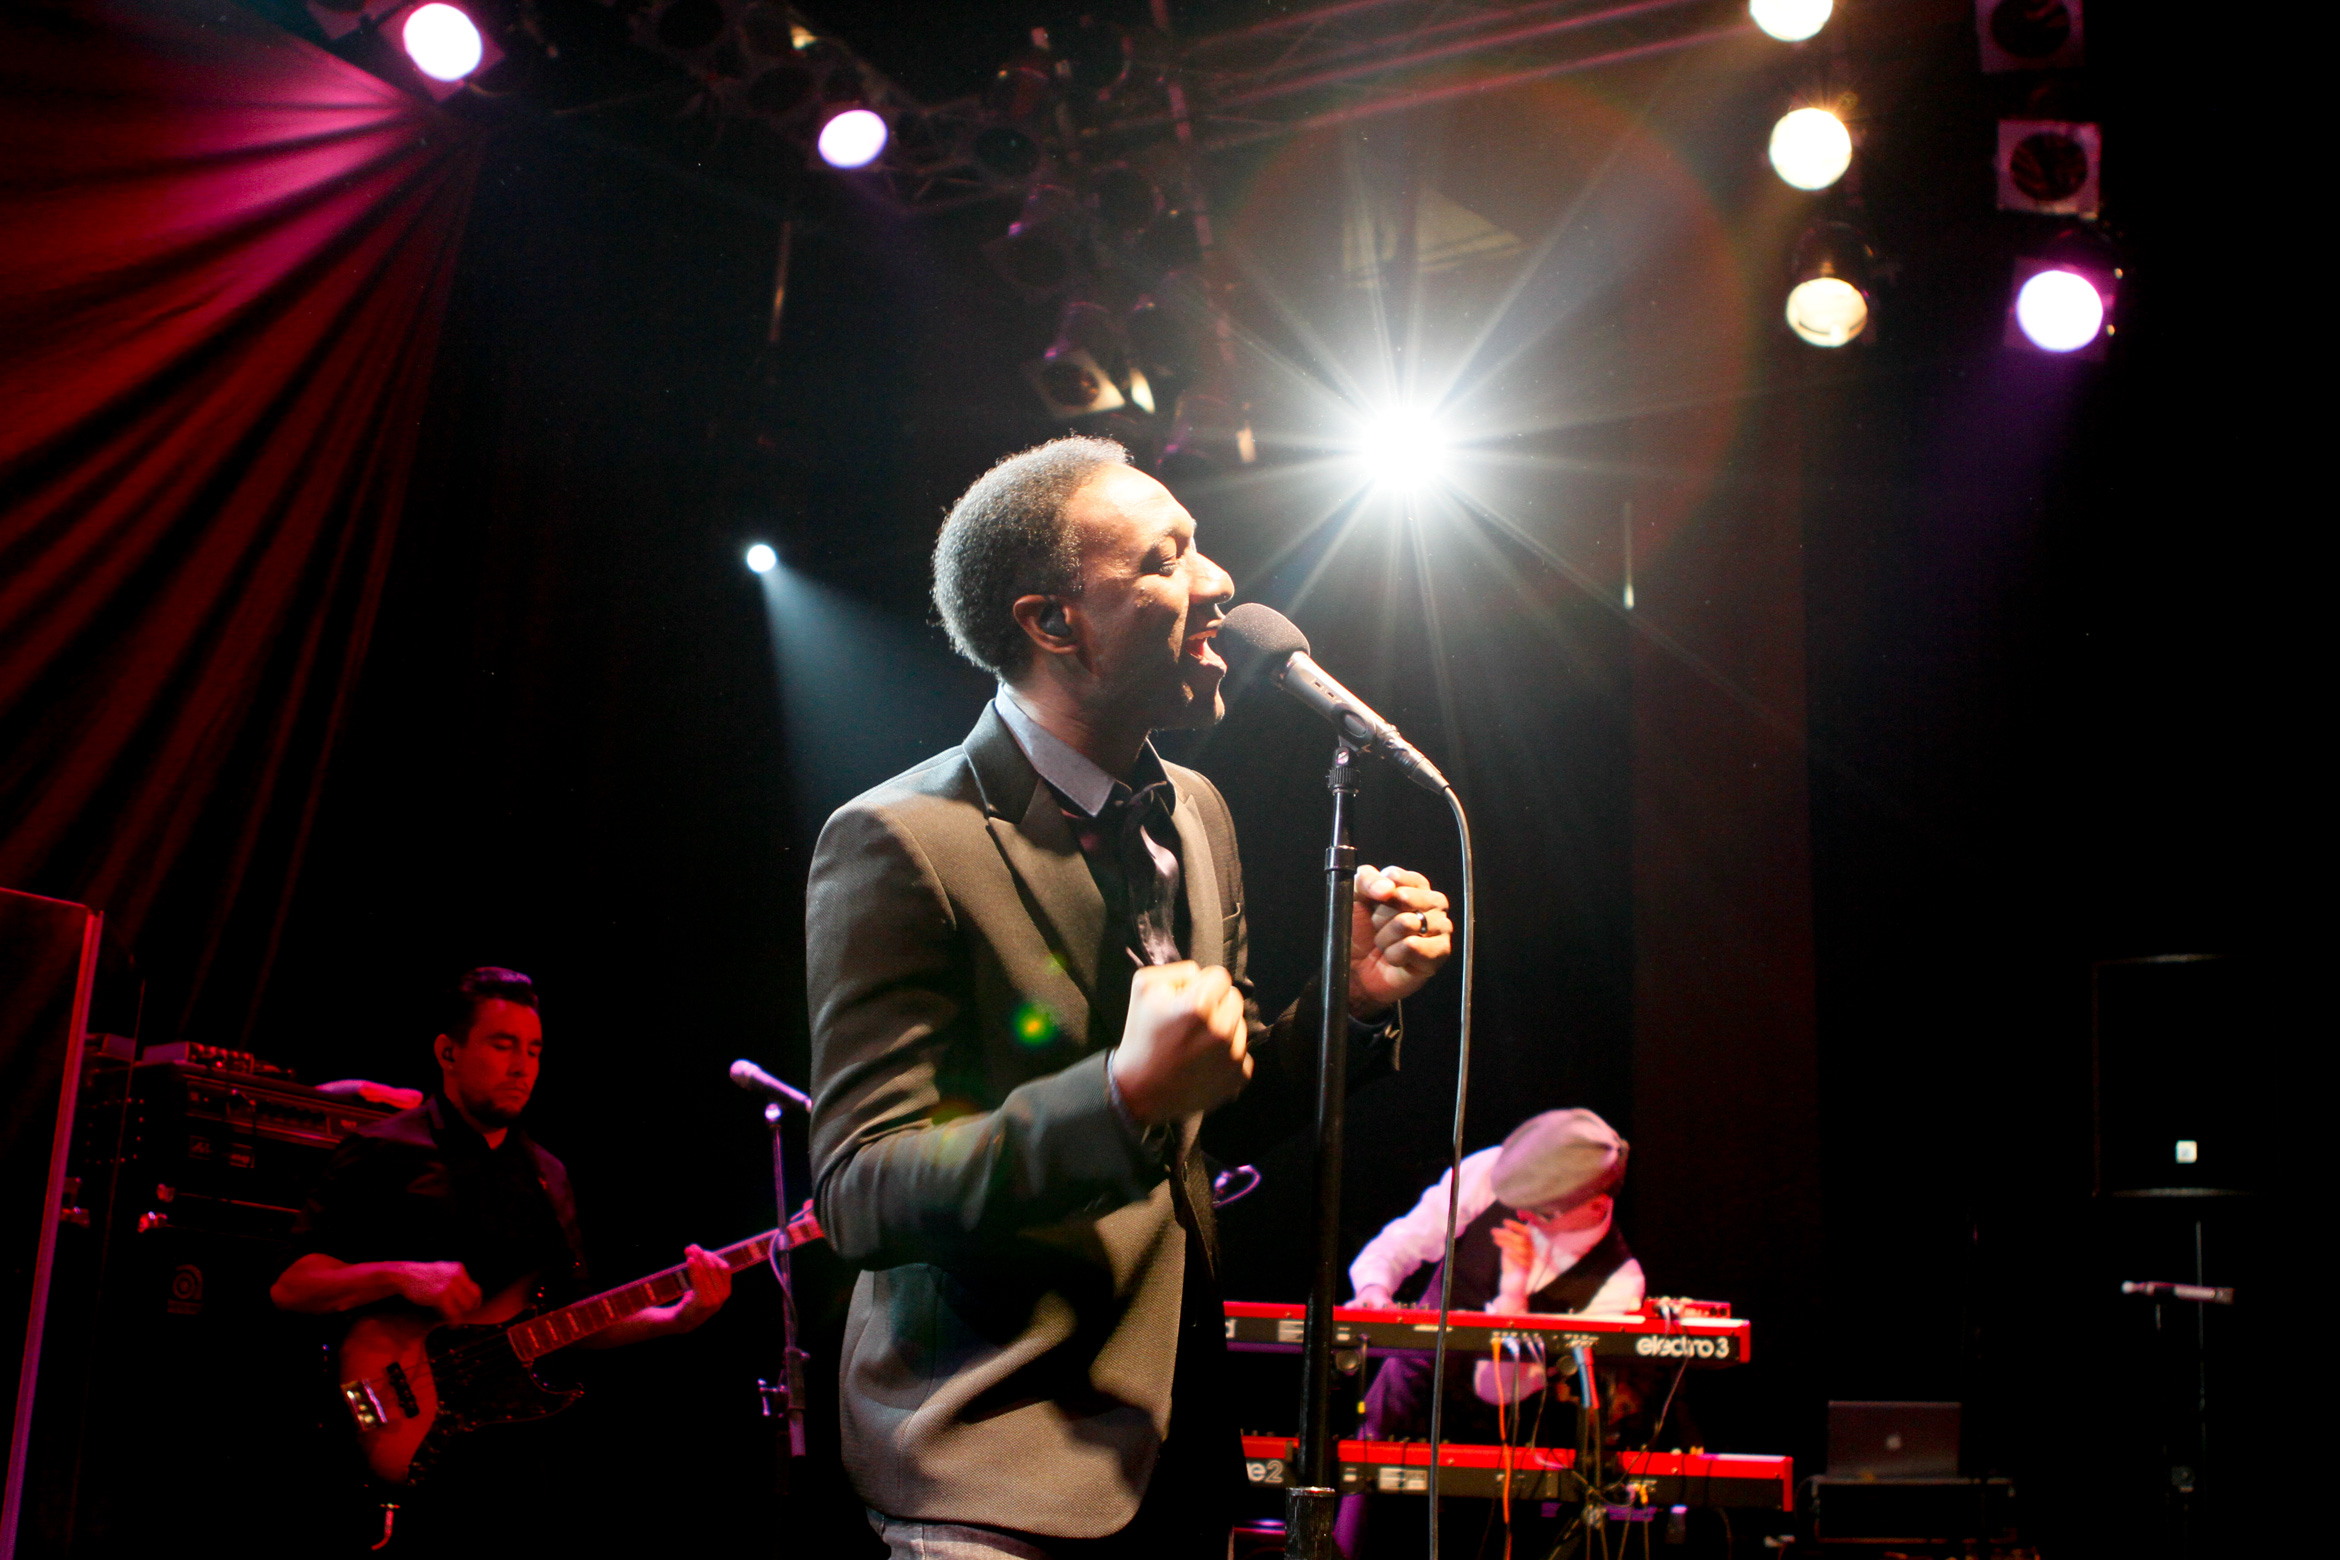 aloe-blacc-in-concert-singing